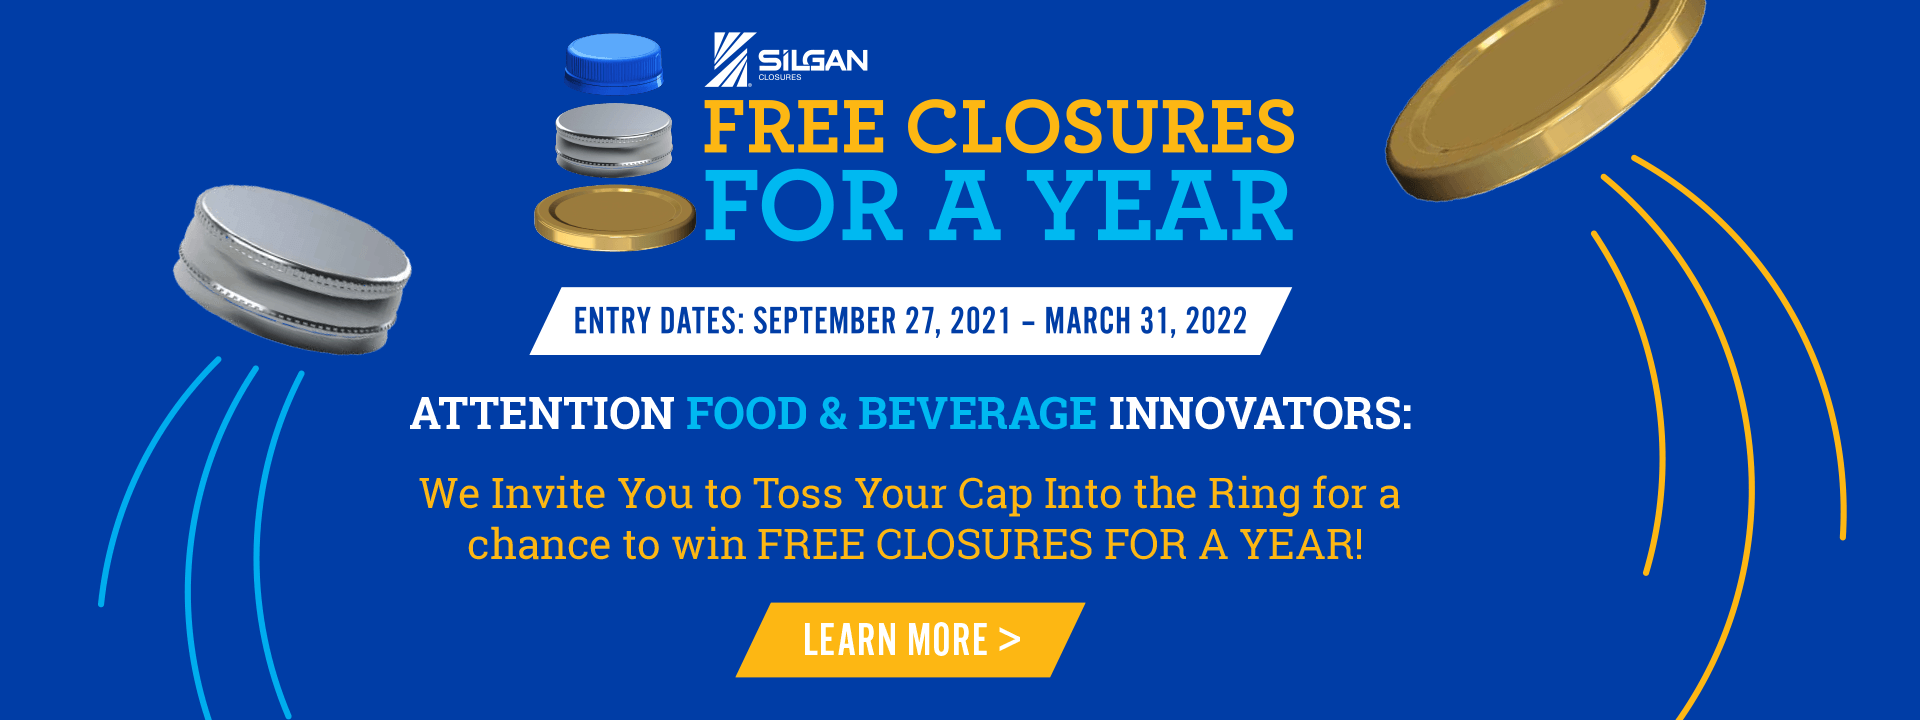 Free Closures for a Year 2021-22